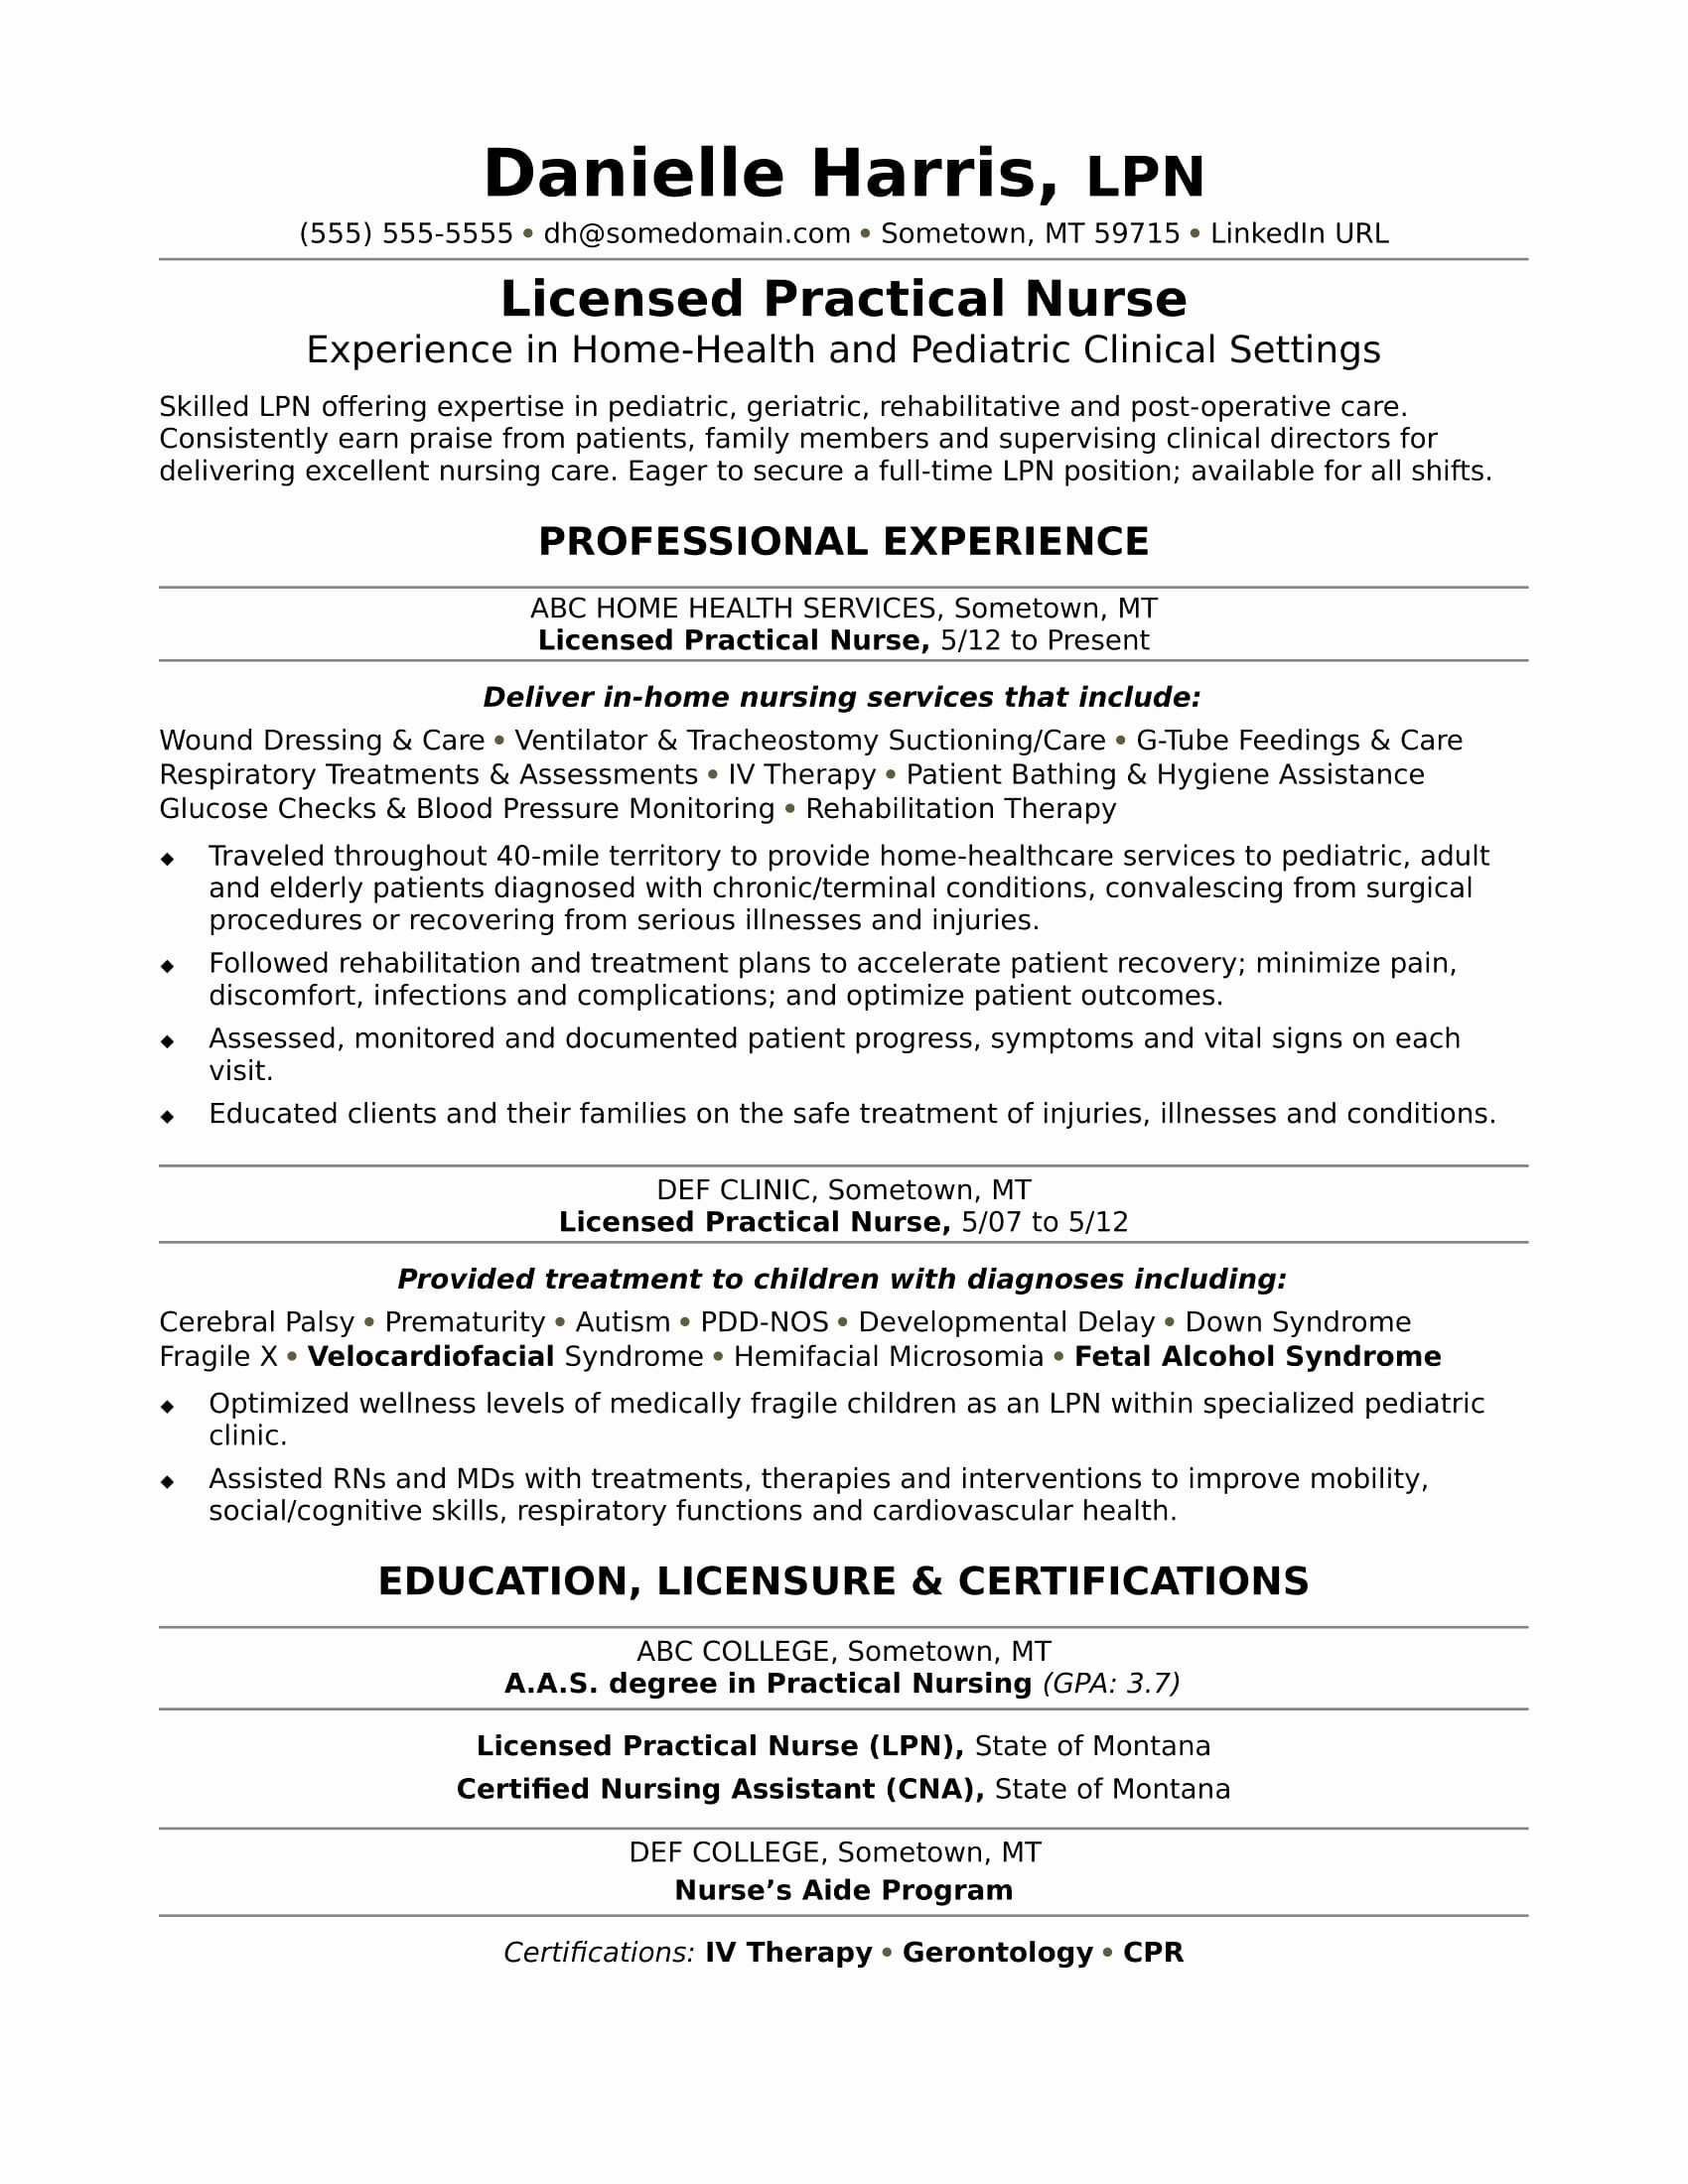 Resume Template for New Graduate Nurse - Free Cv Samples format and Templates Page 332 Of 353